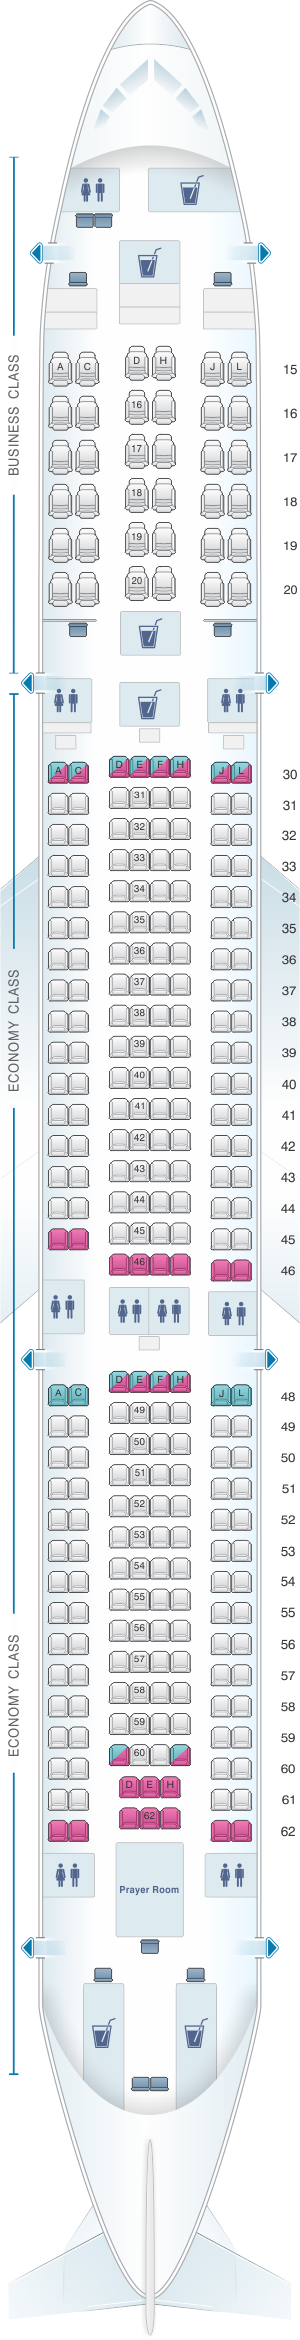 Seat map for Saudi Arabian Airlines Airbus A330 300 (33D)